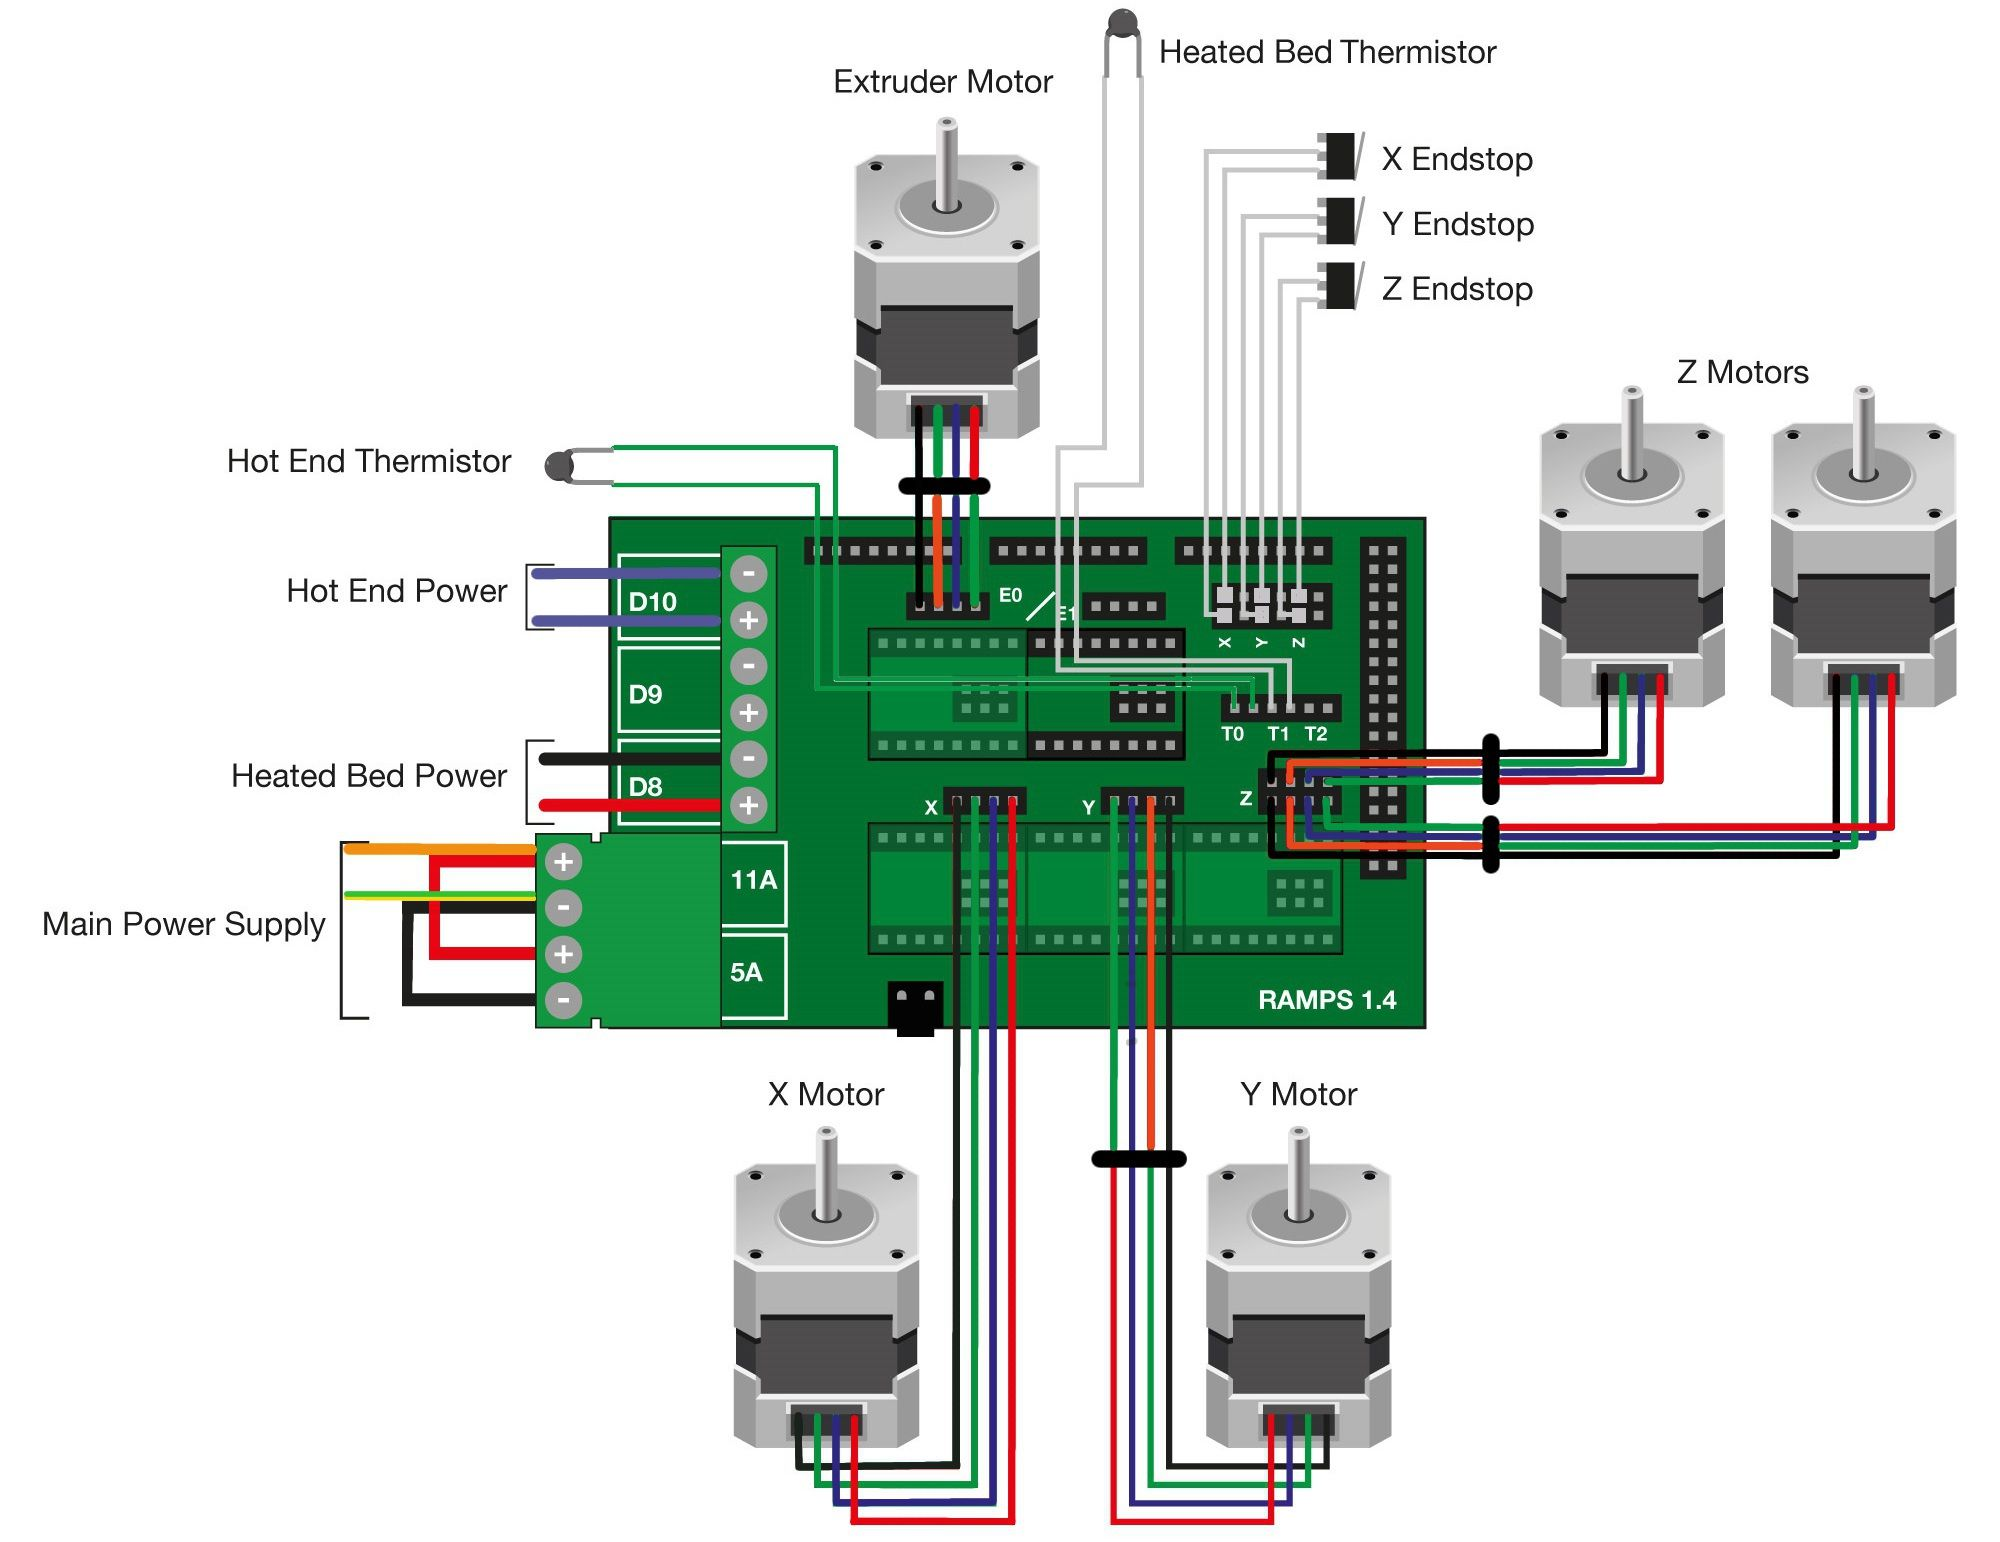 3d05b74bb68f53db12bab4fd4ed789c5 a good example of a ramps 1 4 electronics diagram 3d printer ramps 1.4 wiring diagram at fashall.co